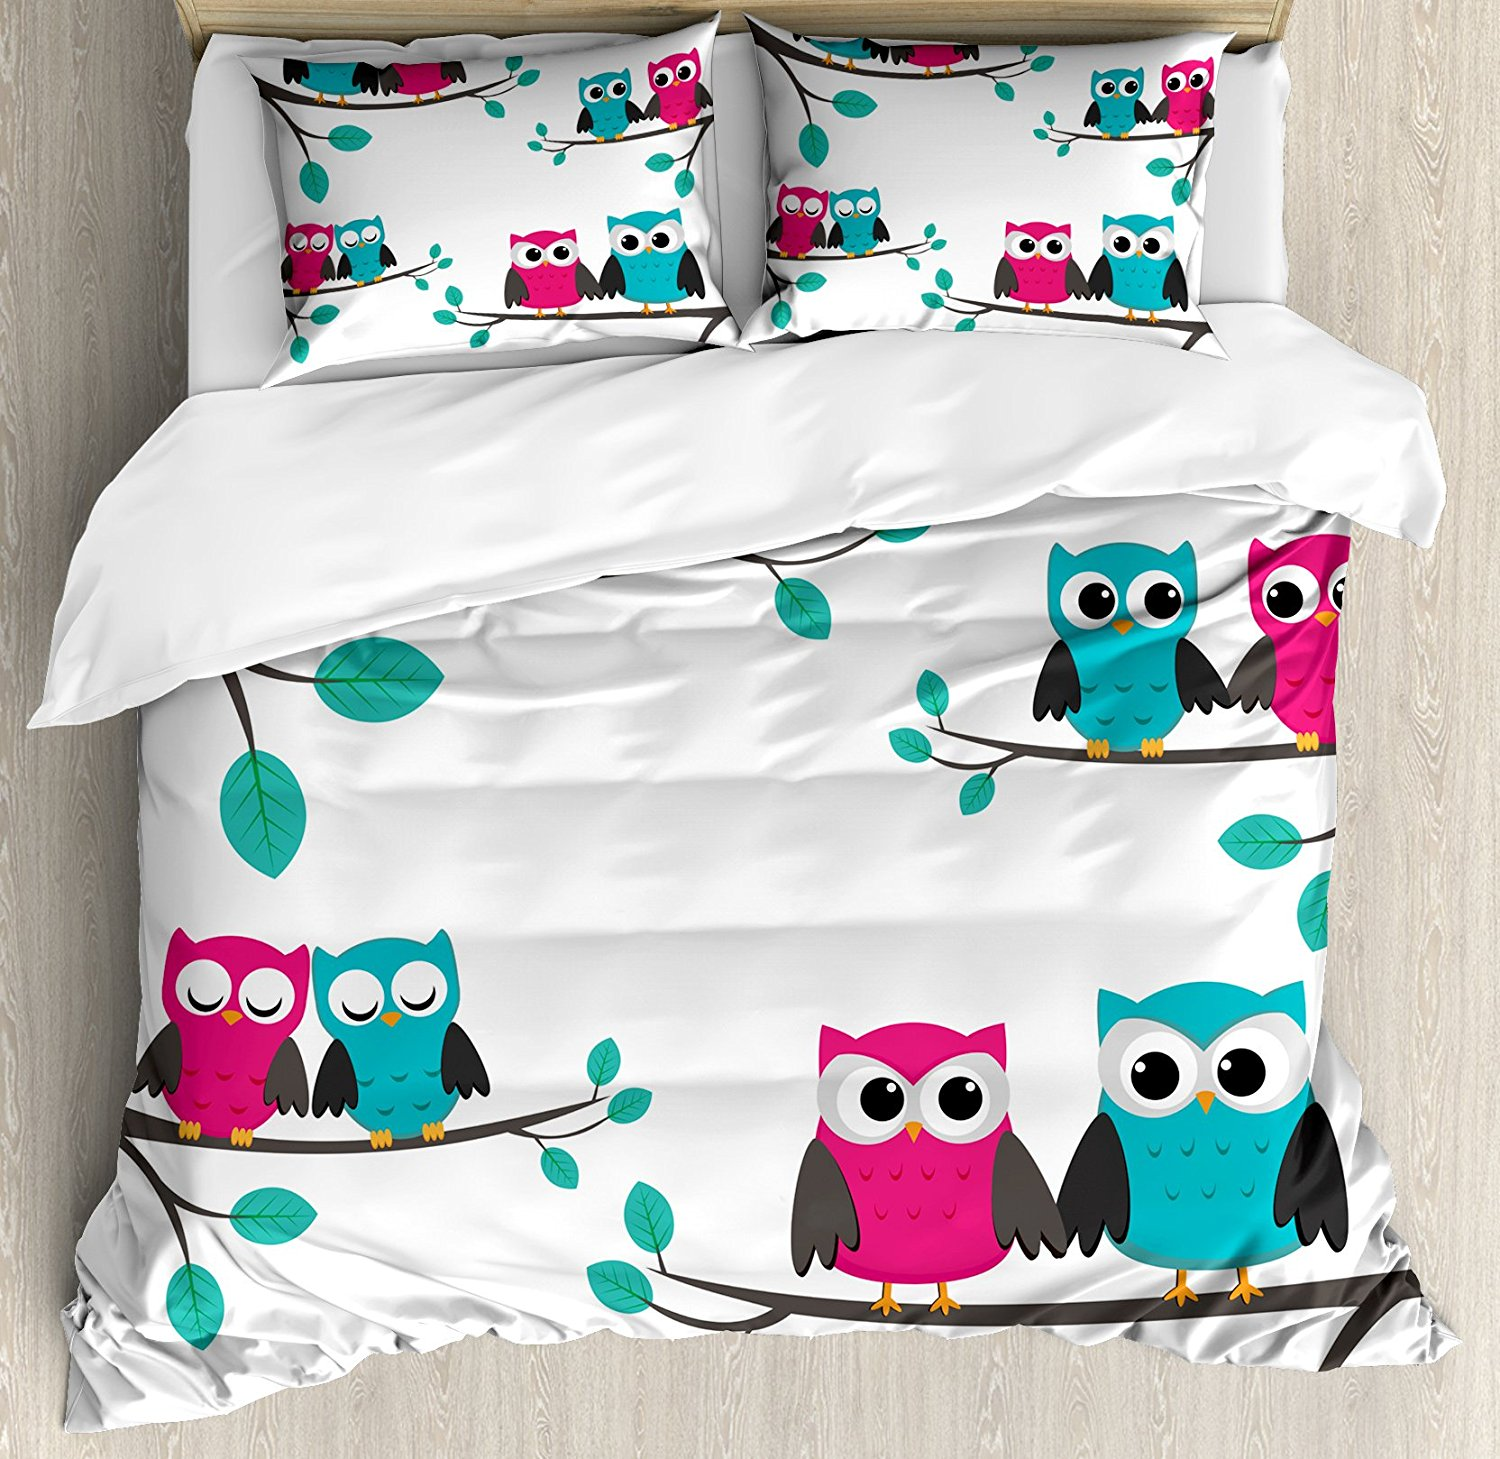 Nursery Duvet Cover Set Couples Of Owls Sitting On Spring Branches Cute Funny Cartoon Characters Bedding Set Turquoise Blue Pink